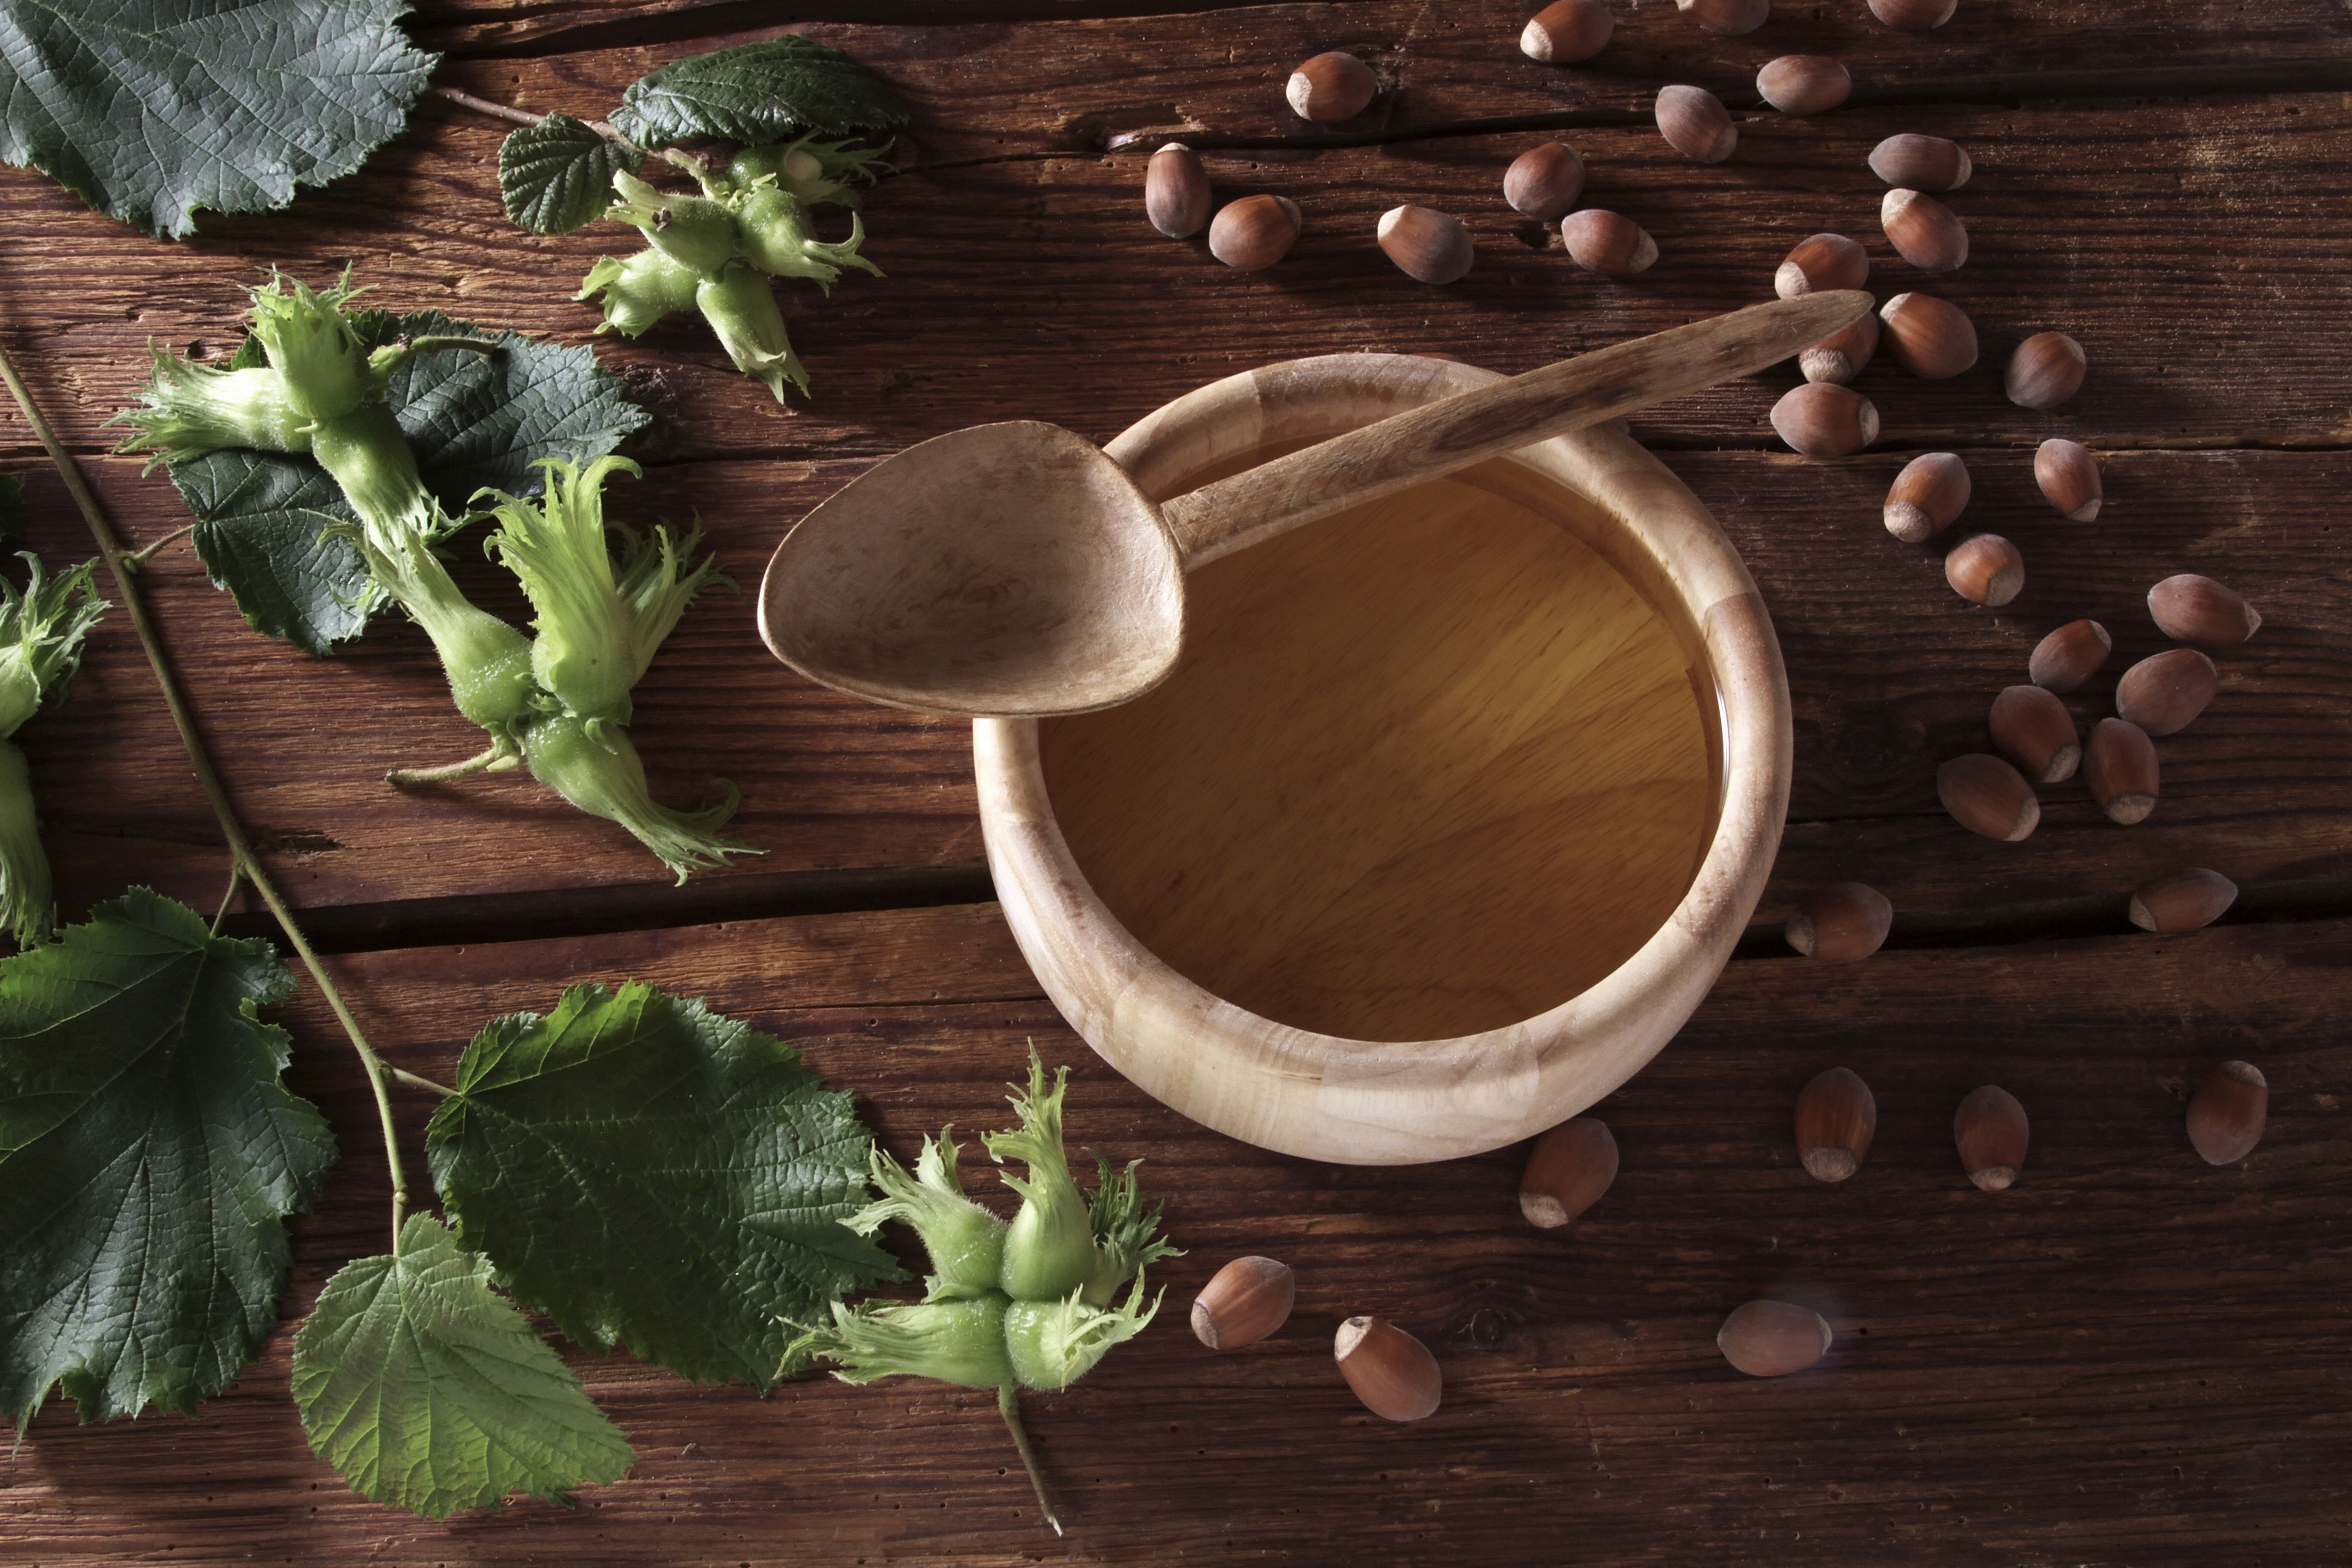 A bowl of hazelnut oil and some ripe and unripe hazelnuts (Corylus avellana) on rustic wooden boards